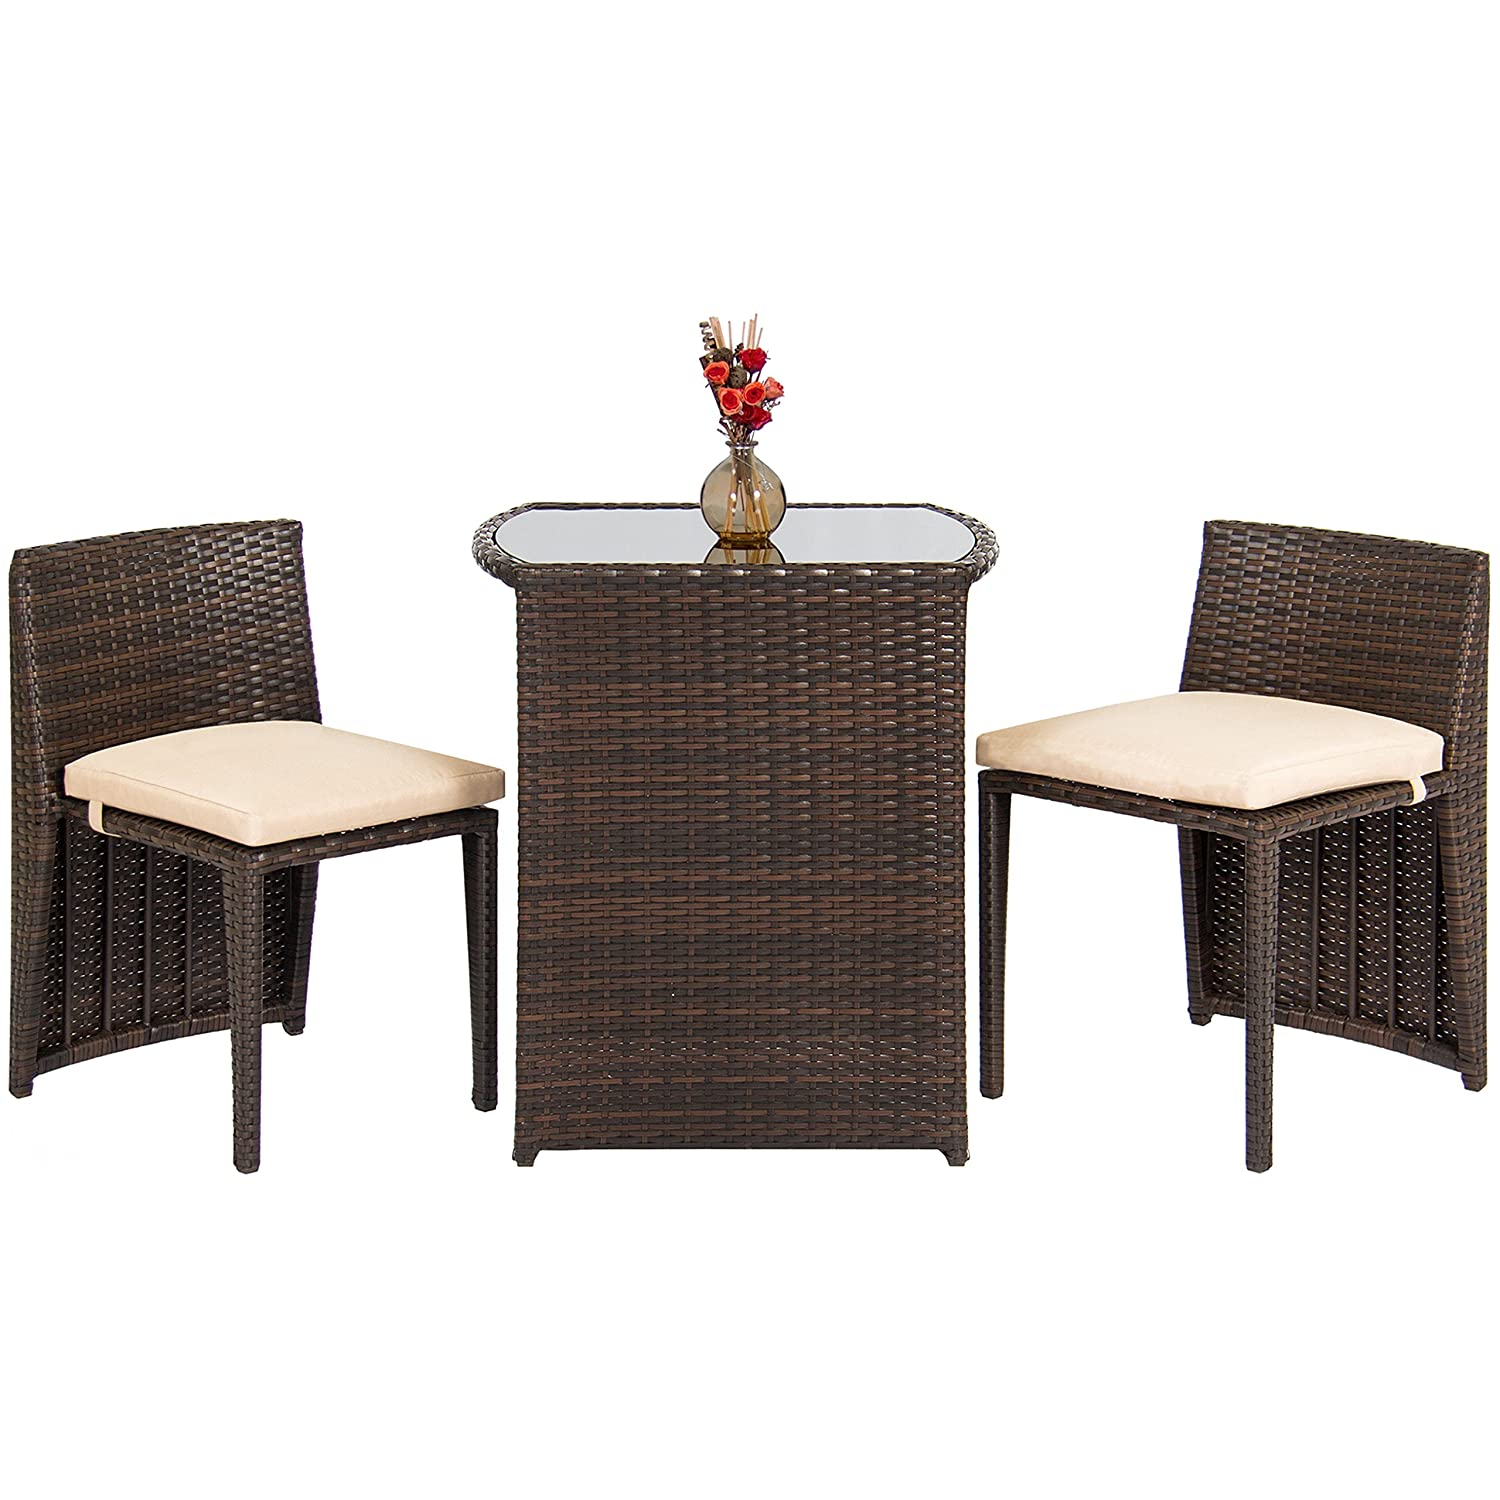 home overstock piece christopher set subcat patio denali garden knight dining less by bar for wood industrial sets three outdoor